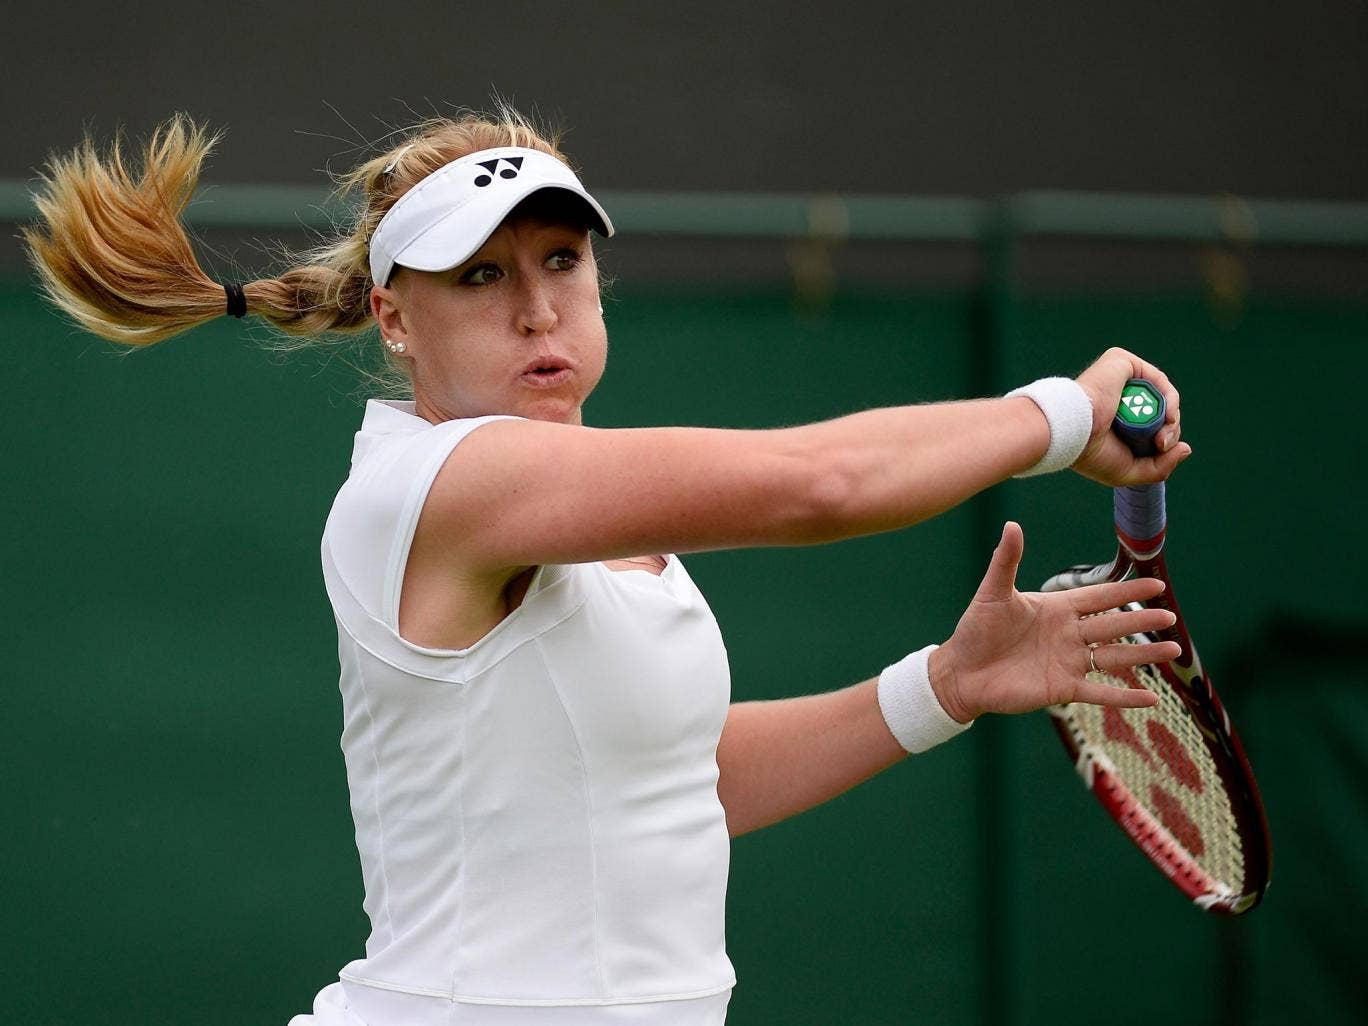 Elena Baltacha of Great Britain hits a forehand during the Ladies Singles match against Flavia Pennetta of Italy on day one at Wimbledon